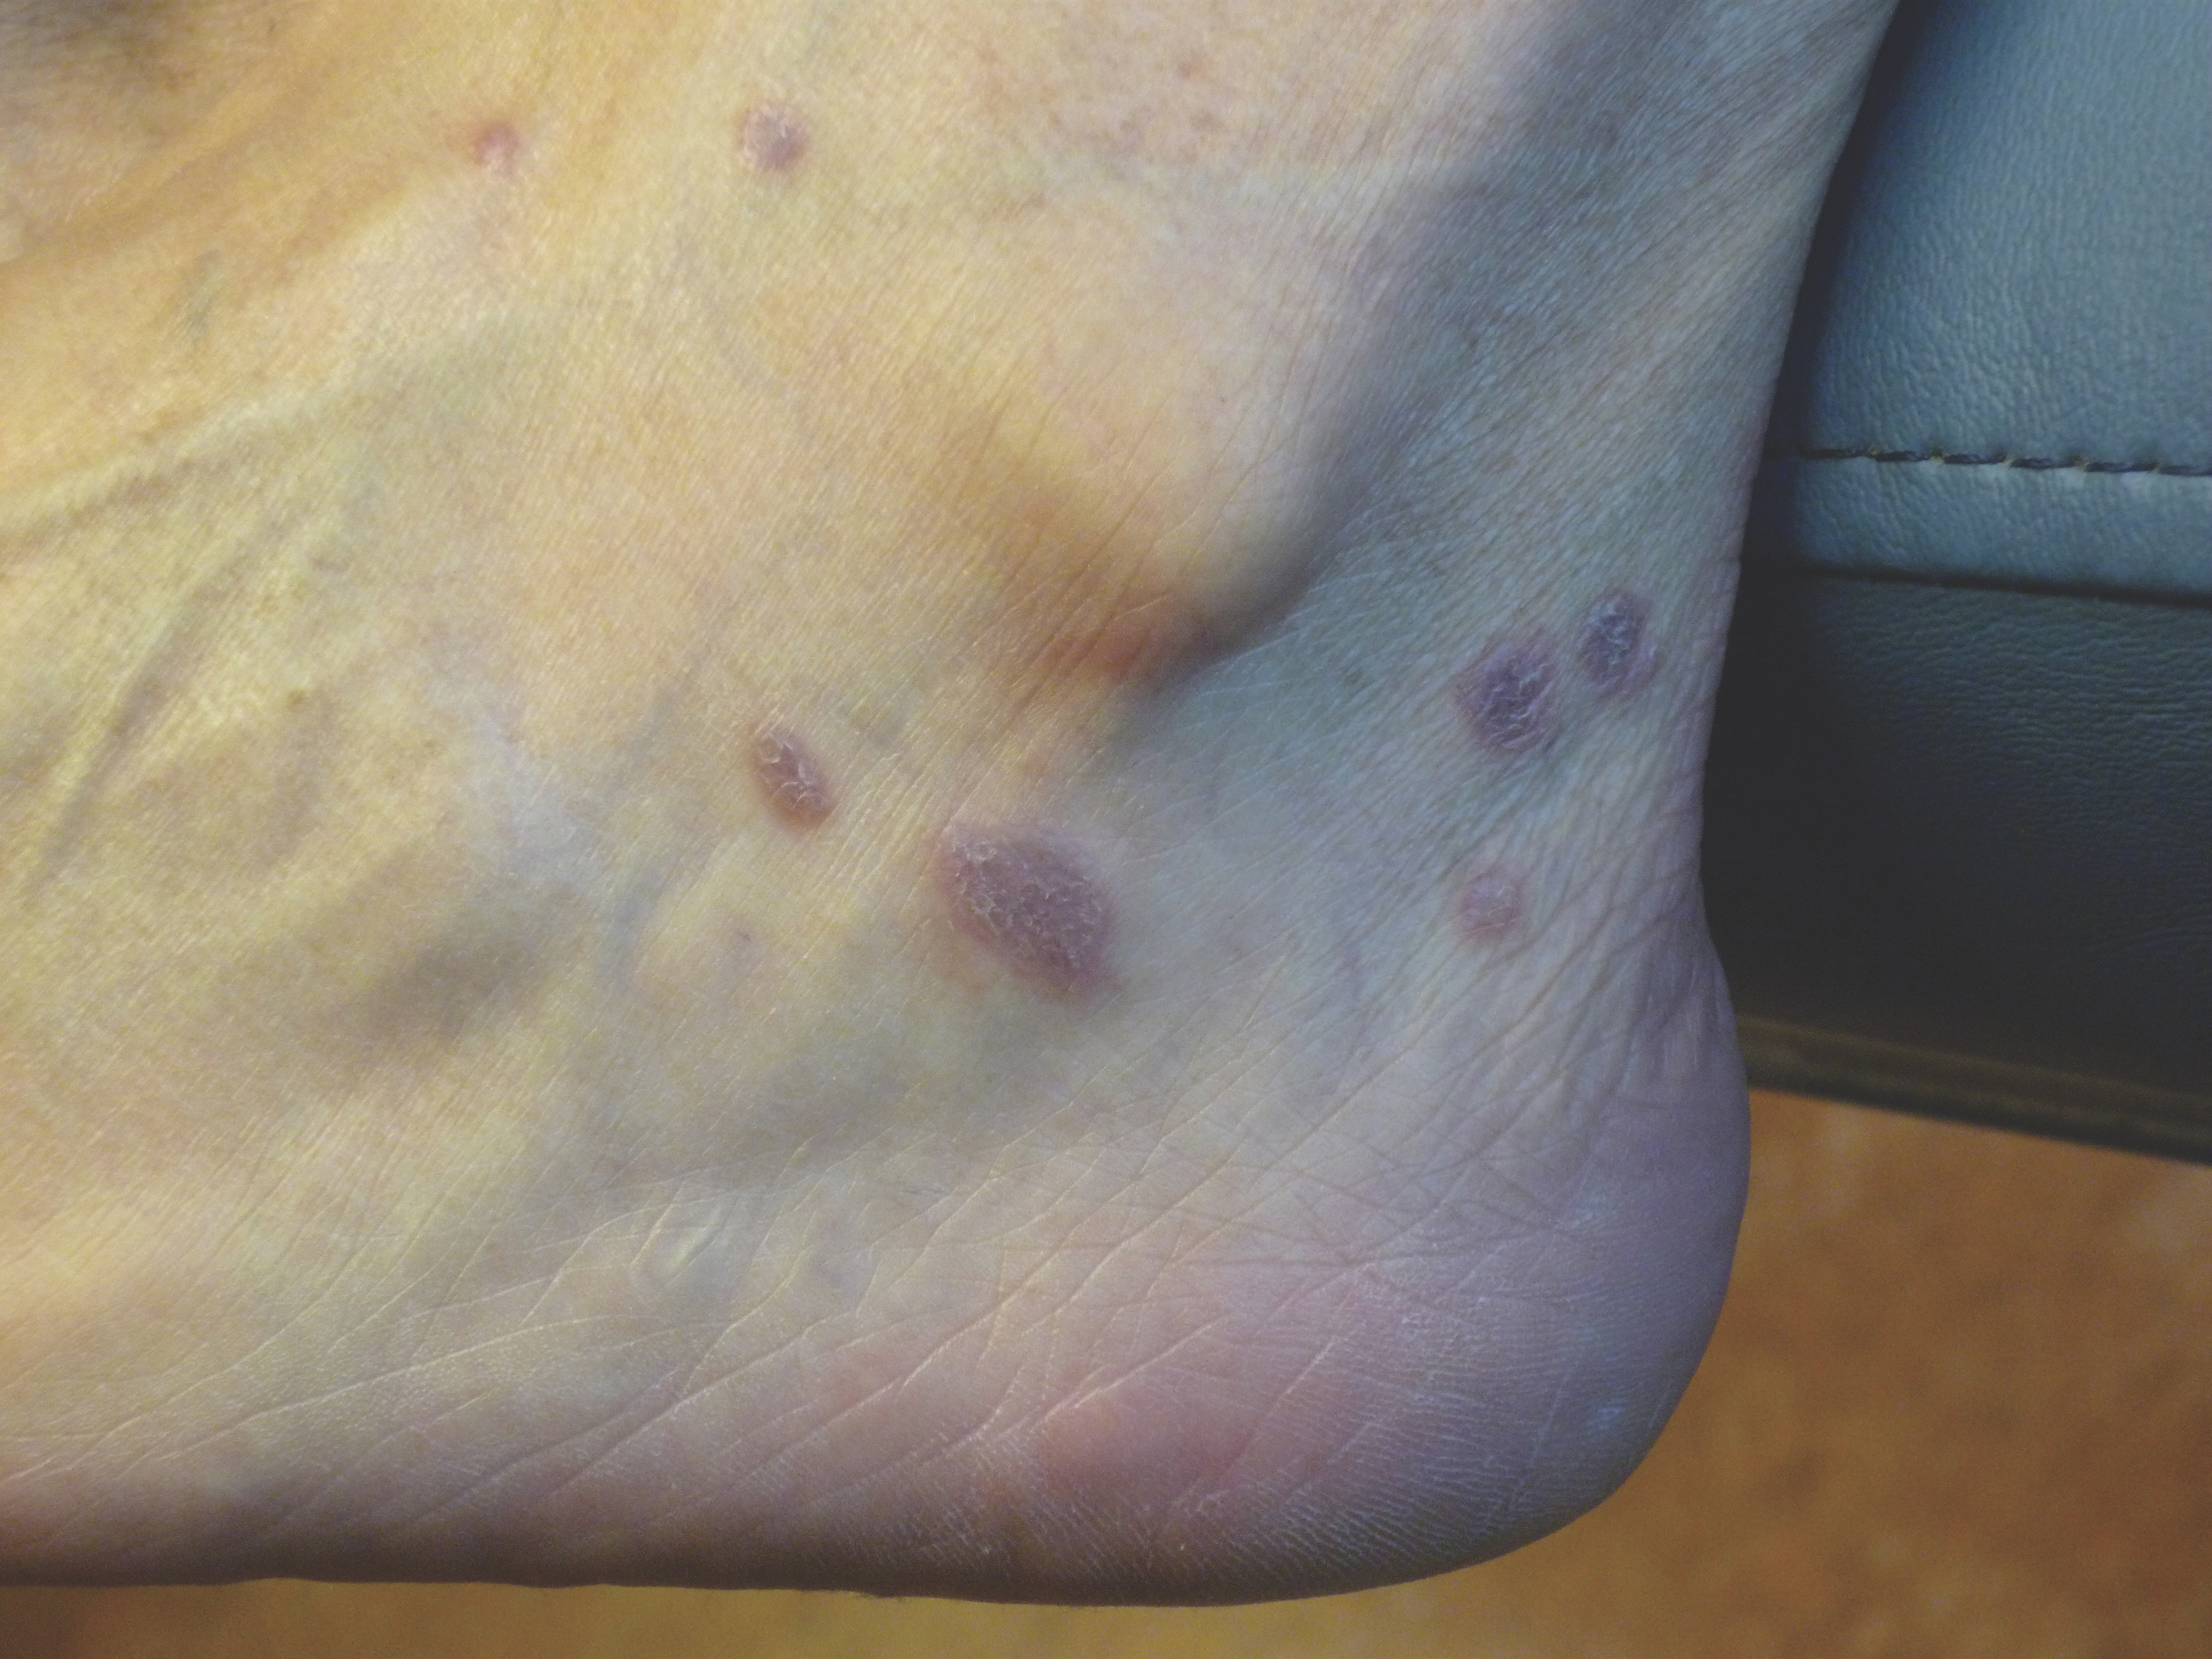 This photo shows an example of lichen planus. Note the purple plaques with a fine scale.